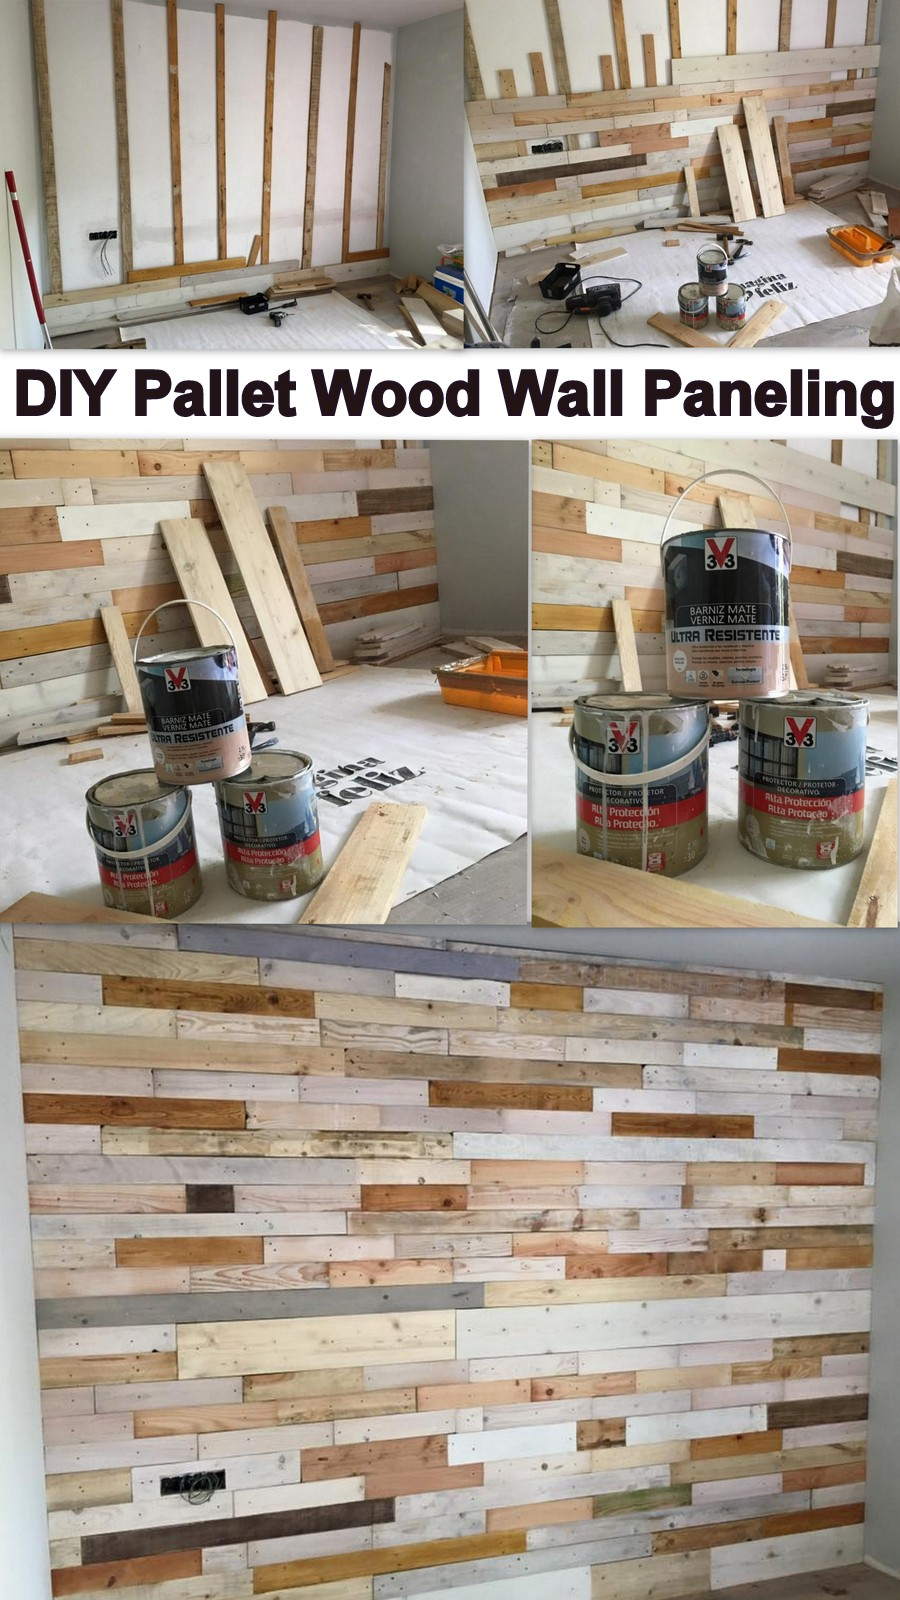 DIY Pallet Wood Wall Paneling | Pallet Ideas